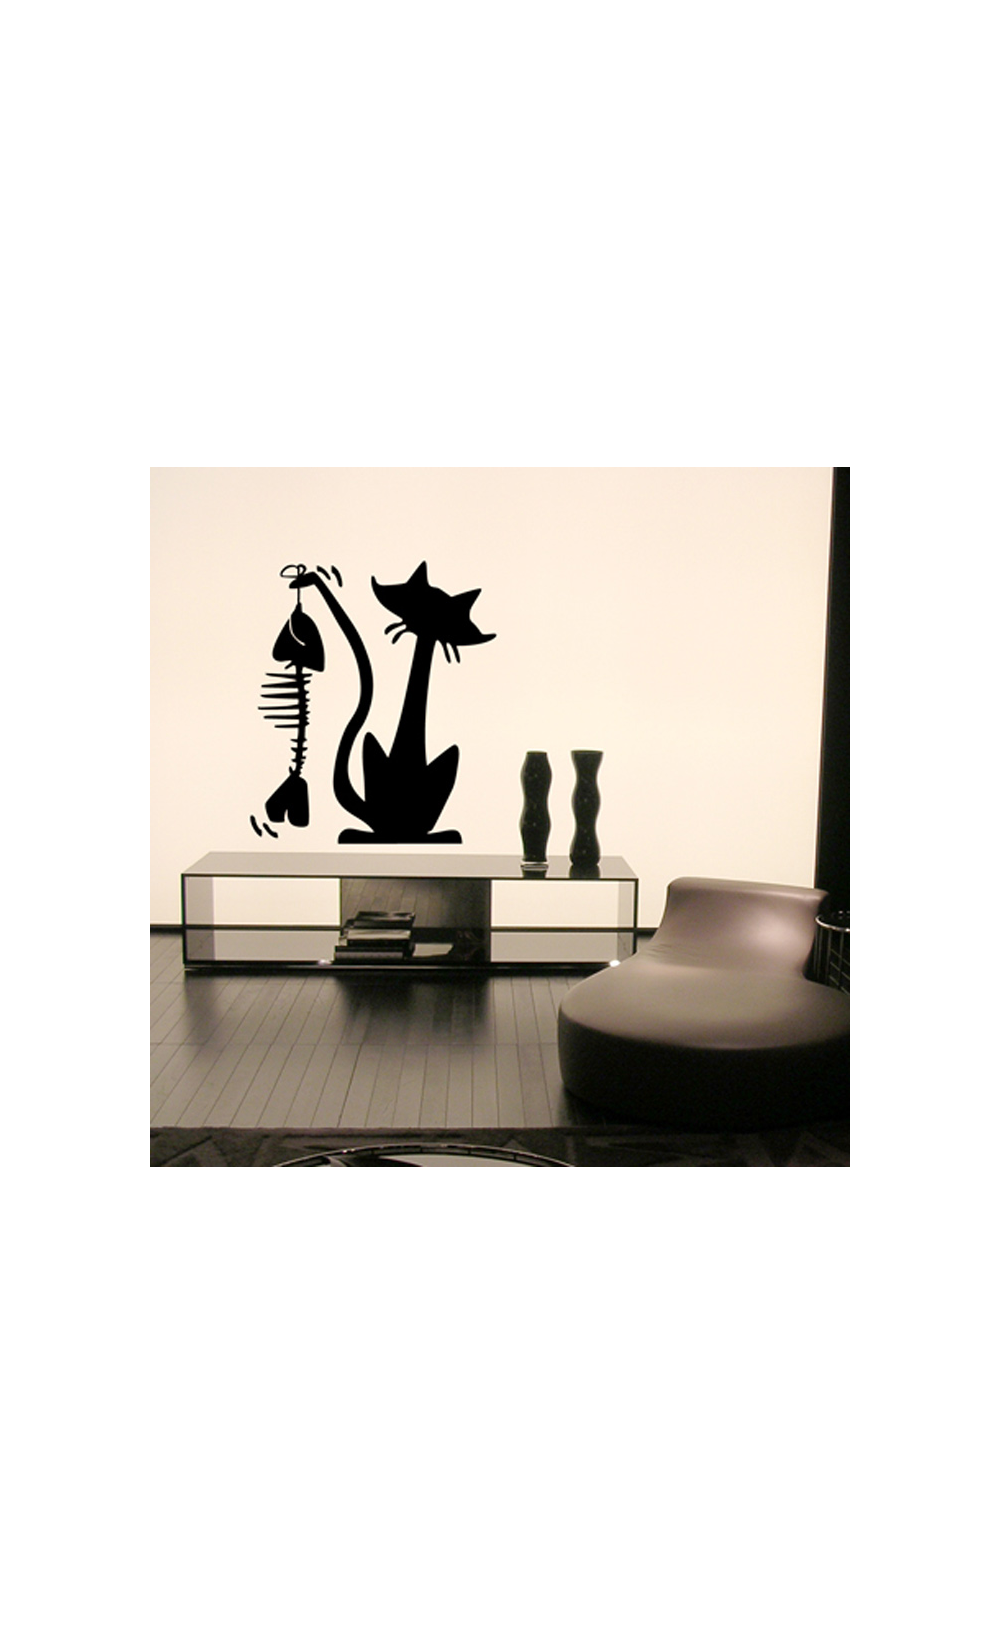 sticker mural pour d corer son int rieur petit prix mod le chat gourmand. Black Bedroom Furniture Sets. Home Design Ideas